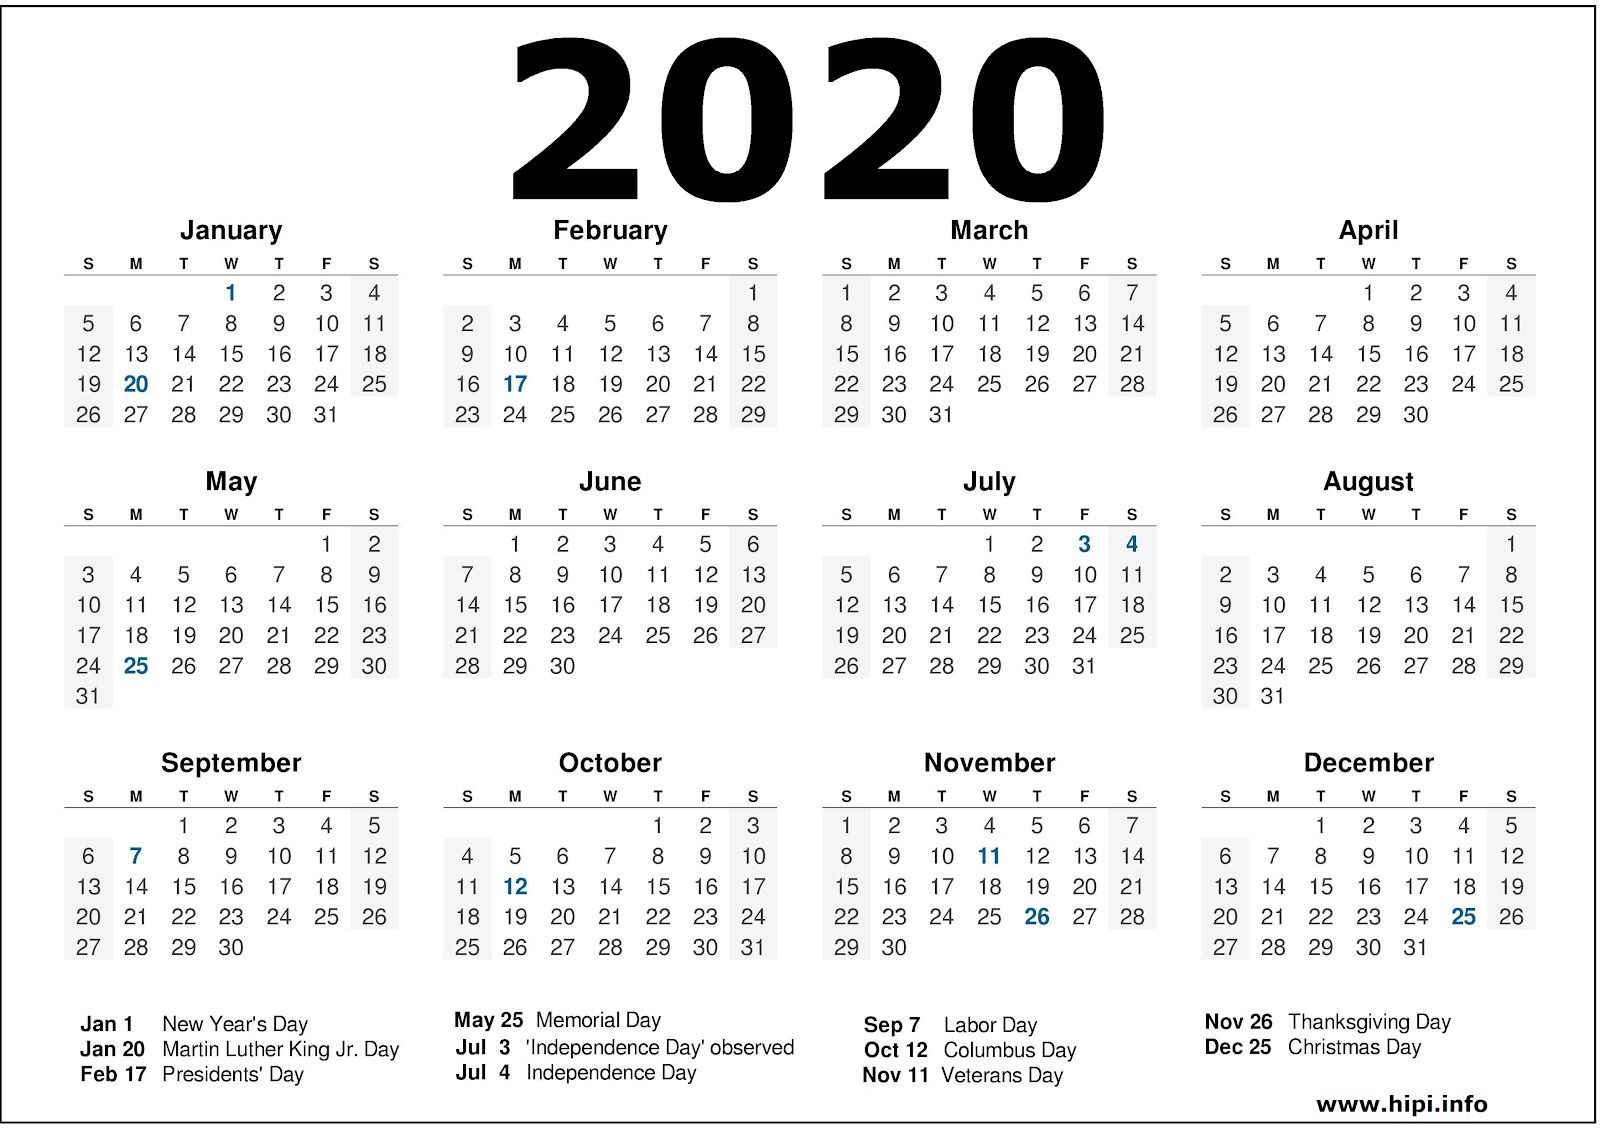 003 Awesome Calendar Template Free Download Image  2020 Powerpoint Table Design 2019 MalaysiaFull